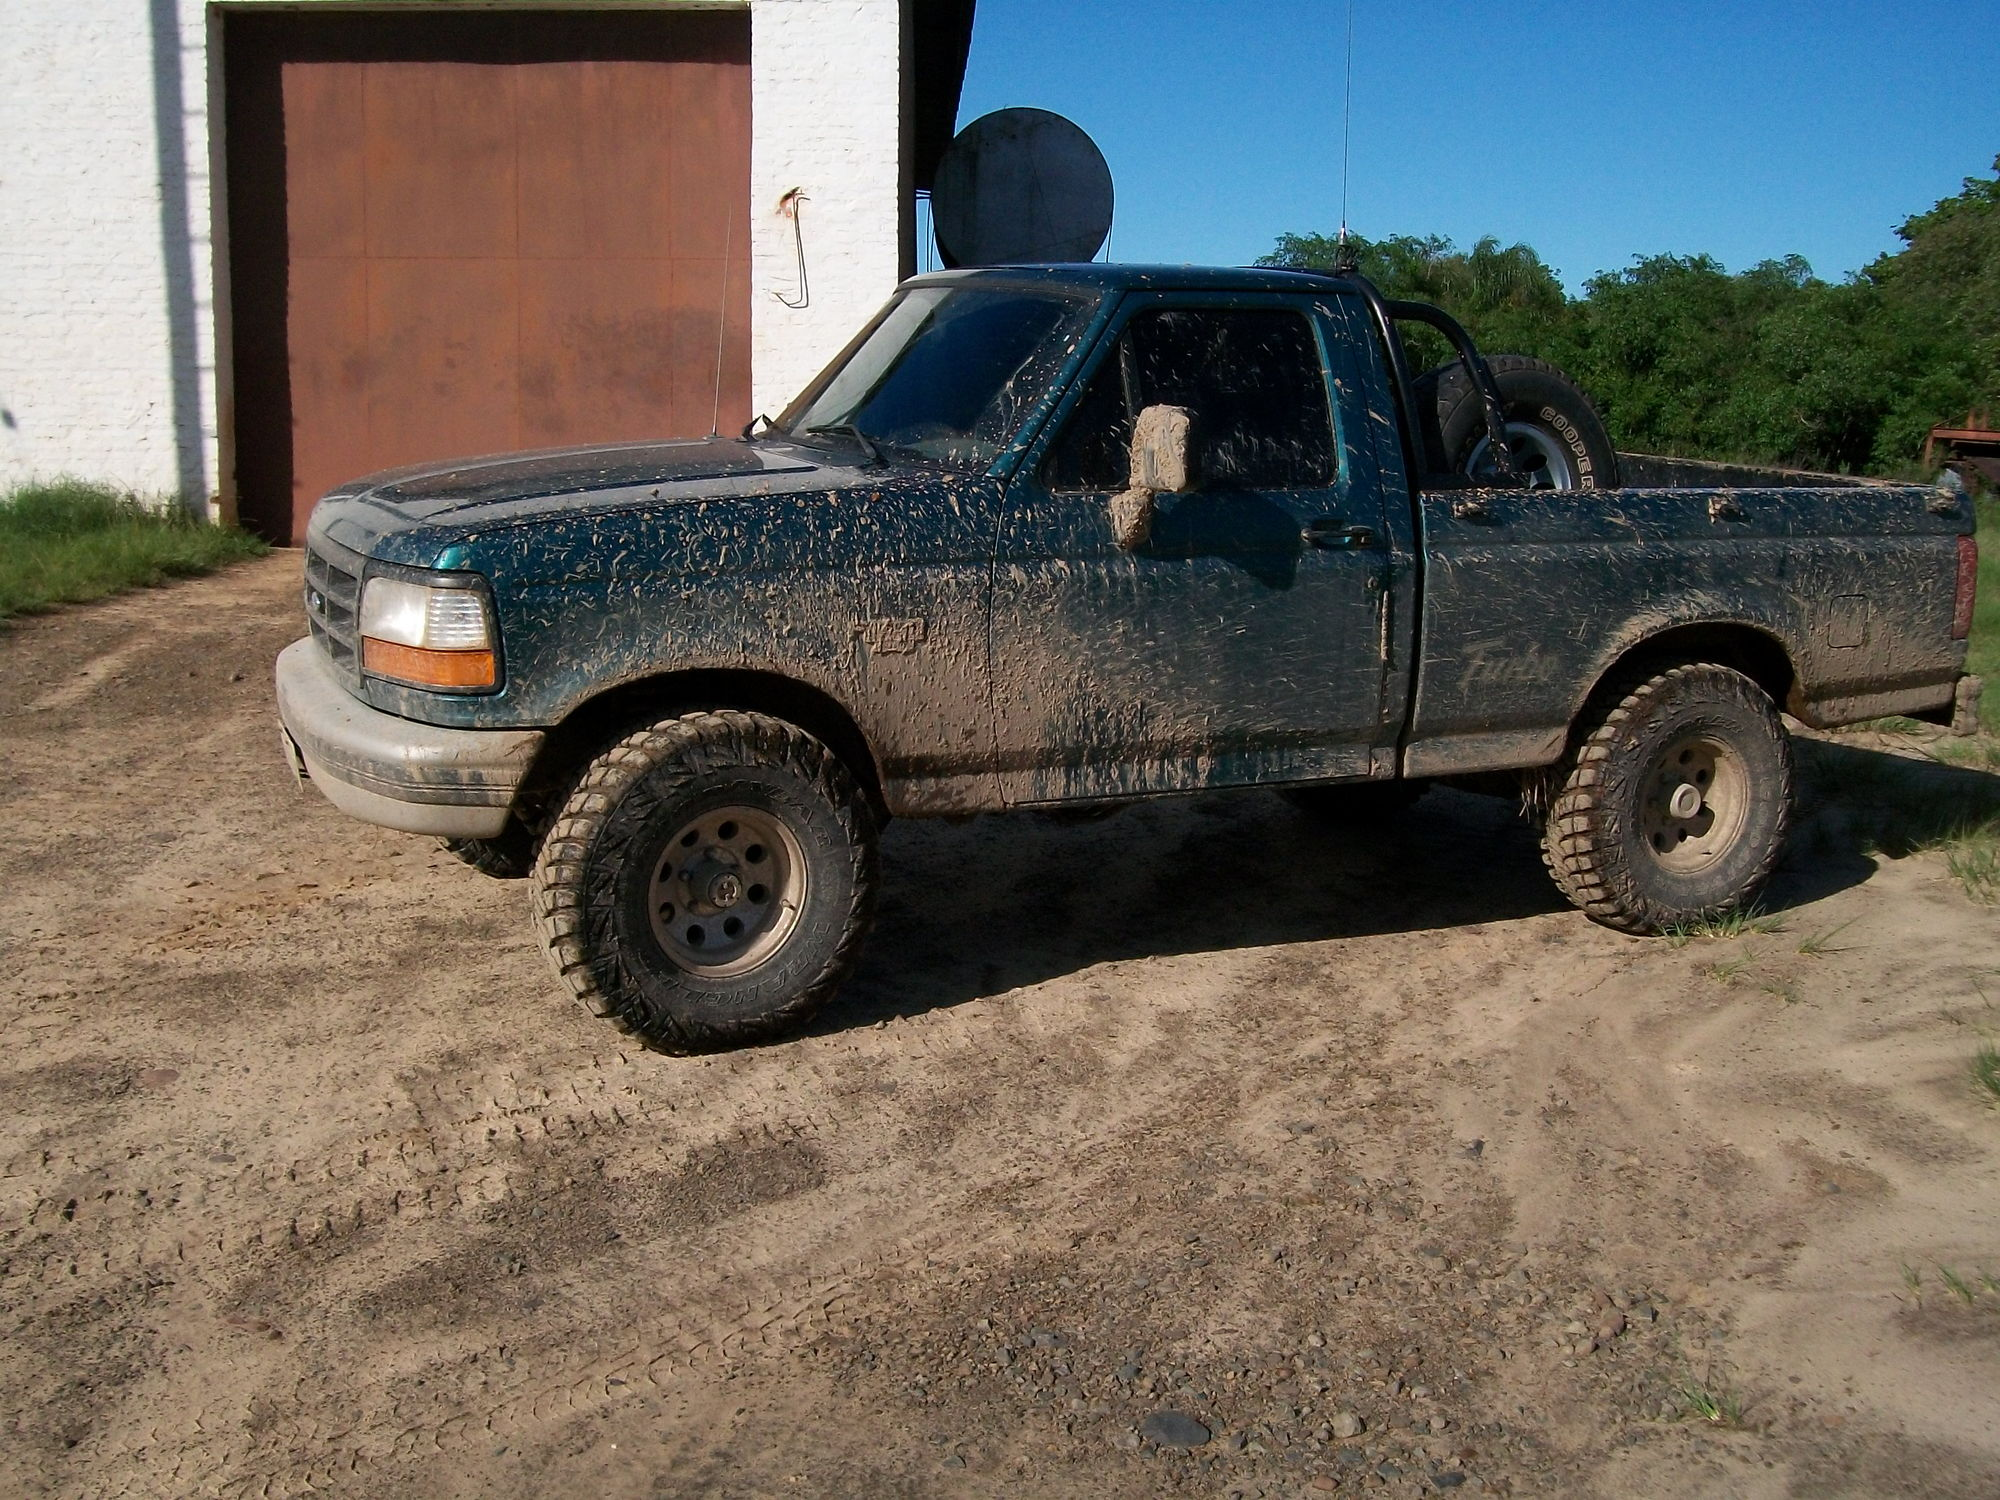 My truck after i amuse myself with him in the mud